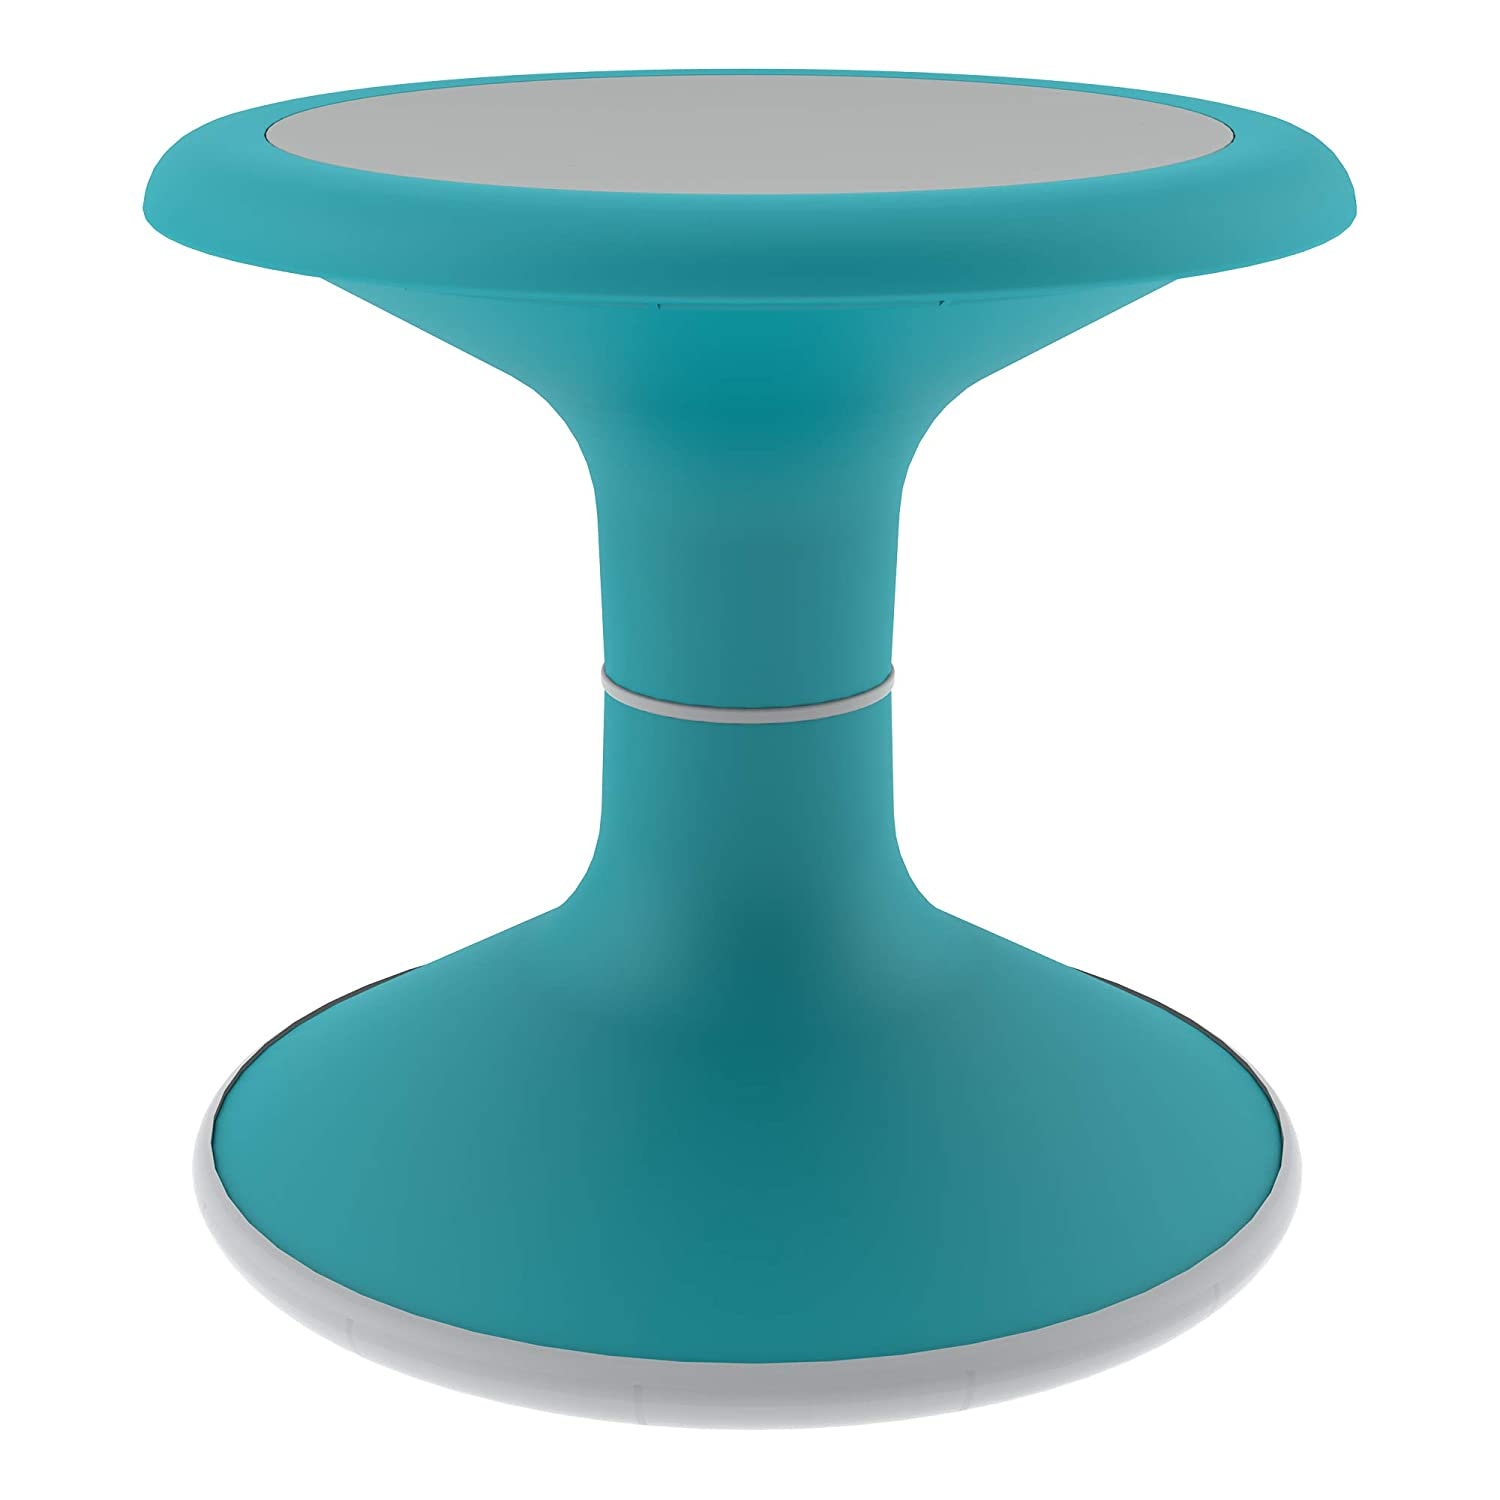 """Sprogs Kids Active Motion Stool - Flexible Seating for School Classroom, Office or Home - 12"""" Seat Height - Teal (SPG-NUS3000-TL-SO)"""